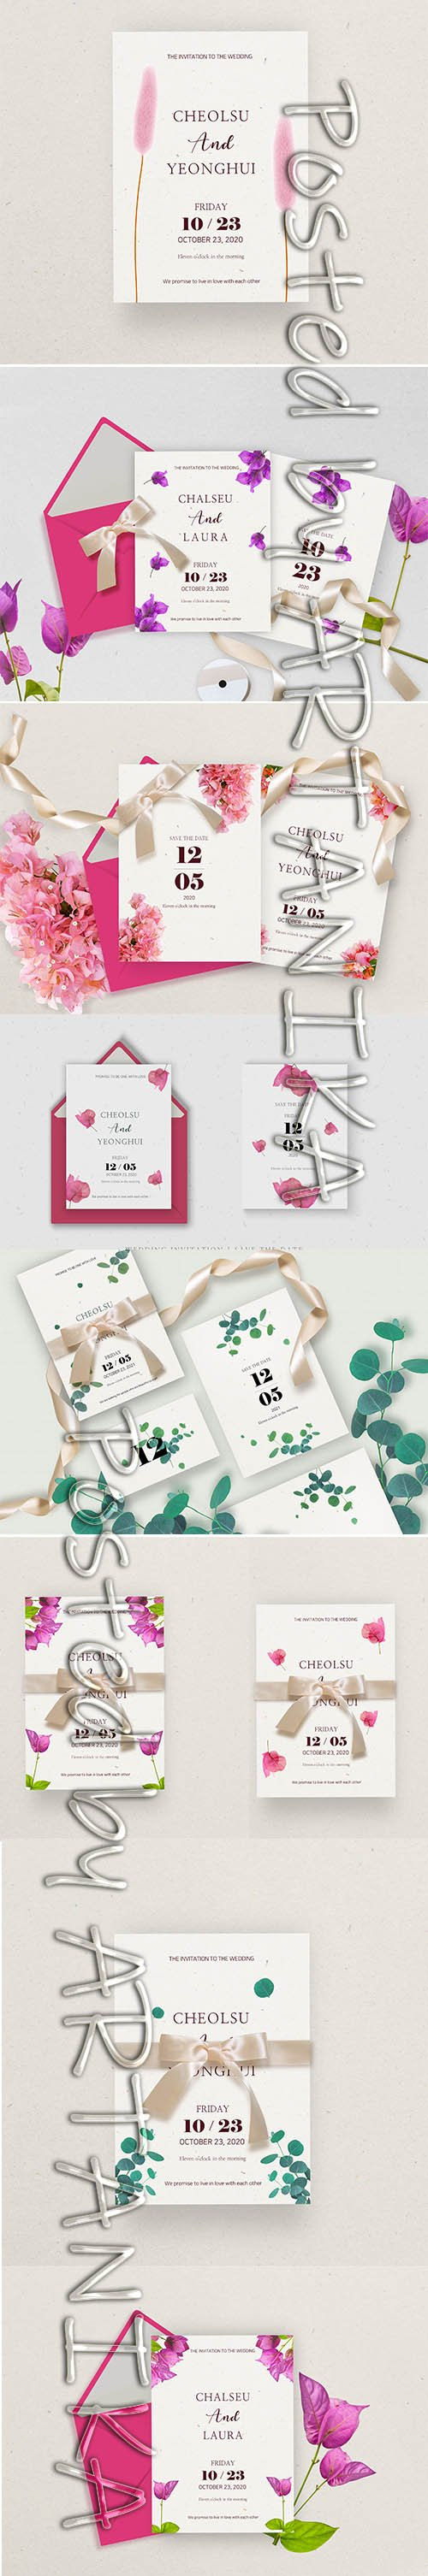 Set of Weeding Invitation Decorated with Flowers